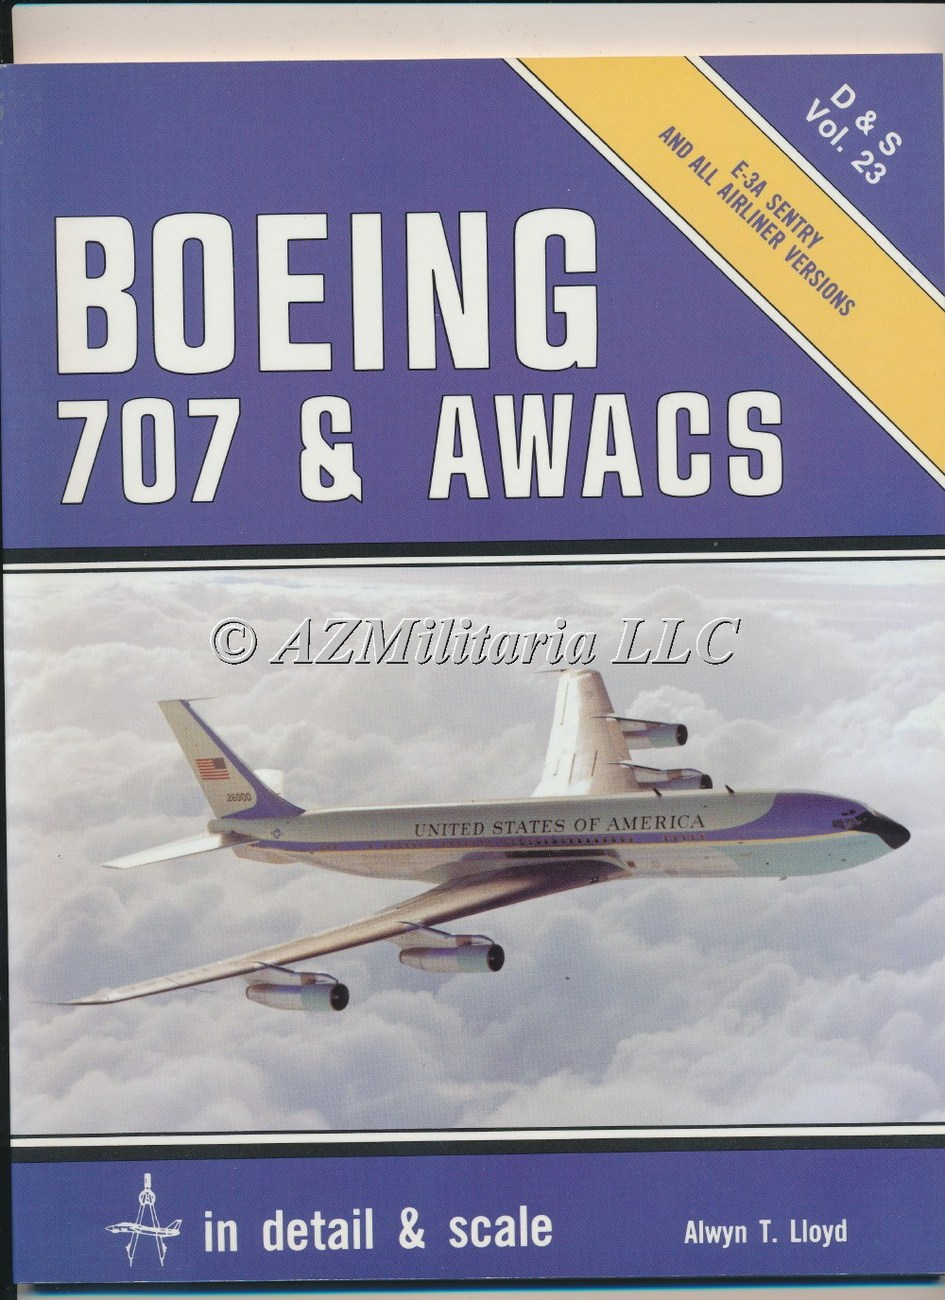 Boeing 707 & AWACS D&S VOL 23